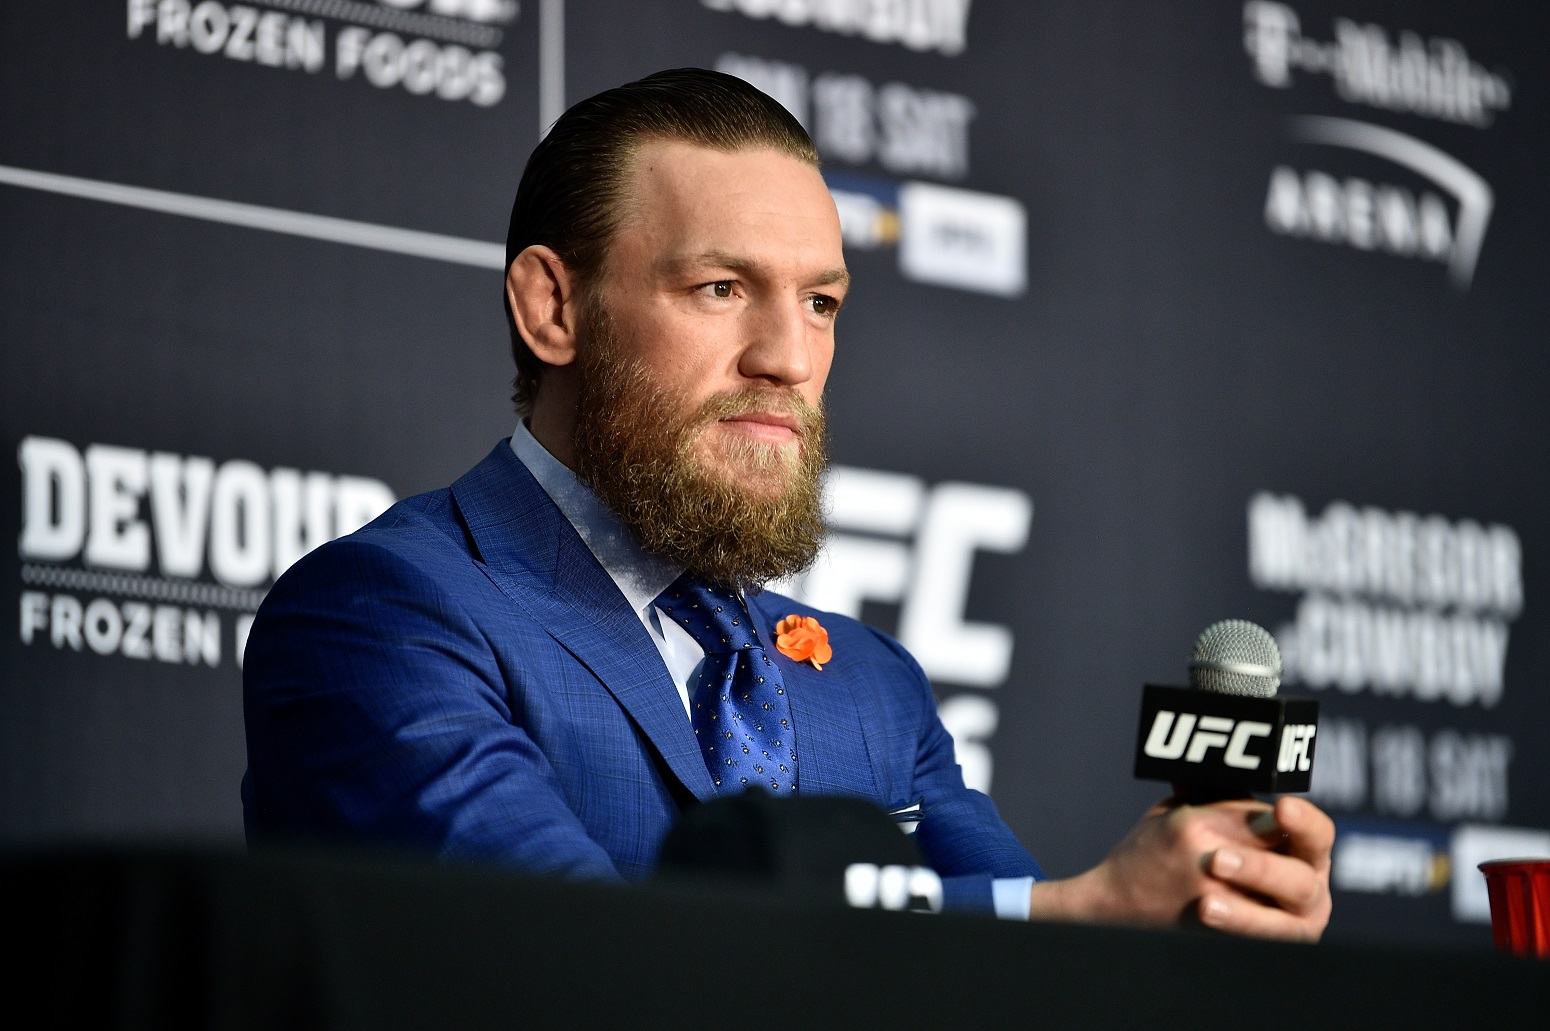 Conor McGregor May Finally Get What He Truly Wants